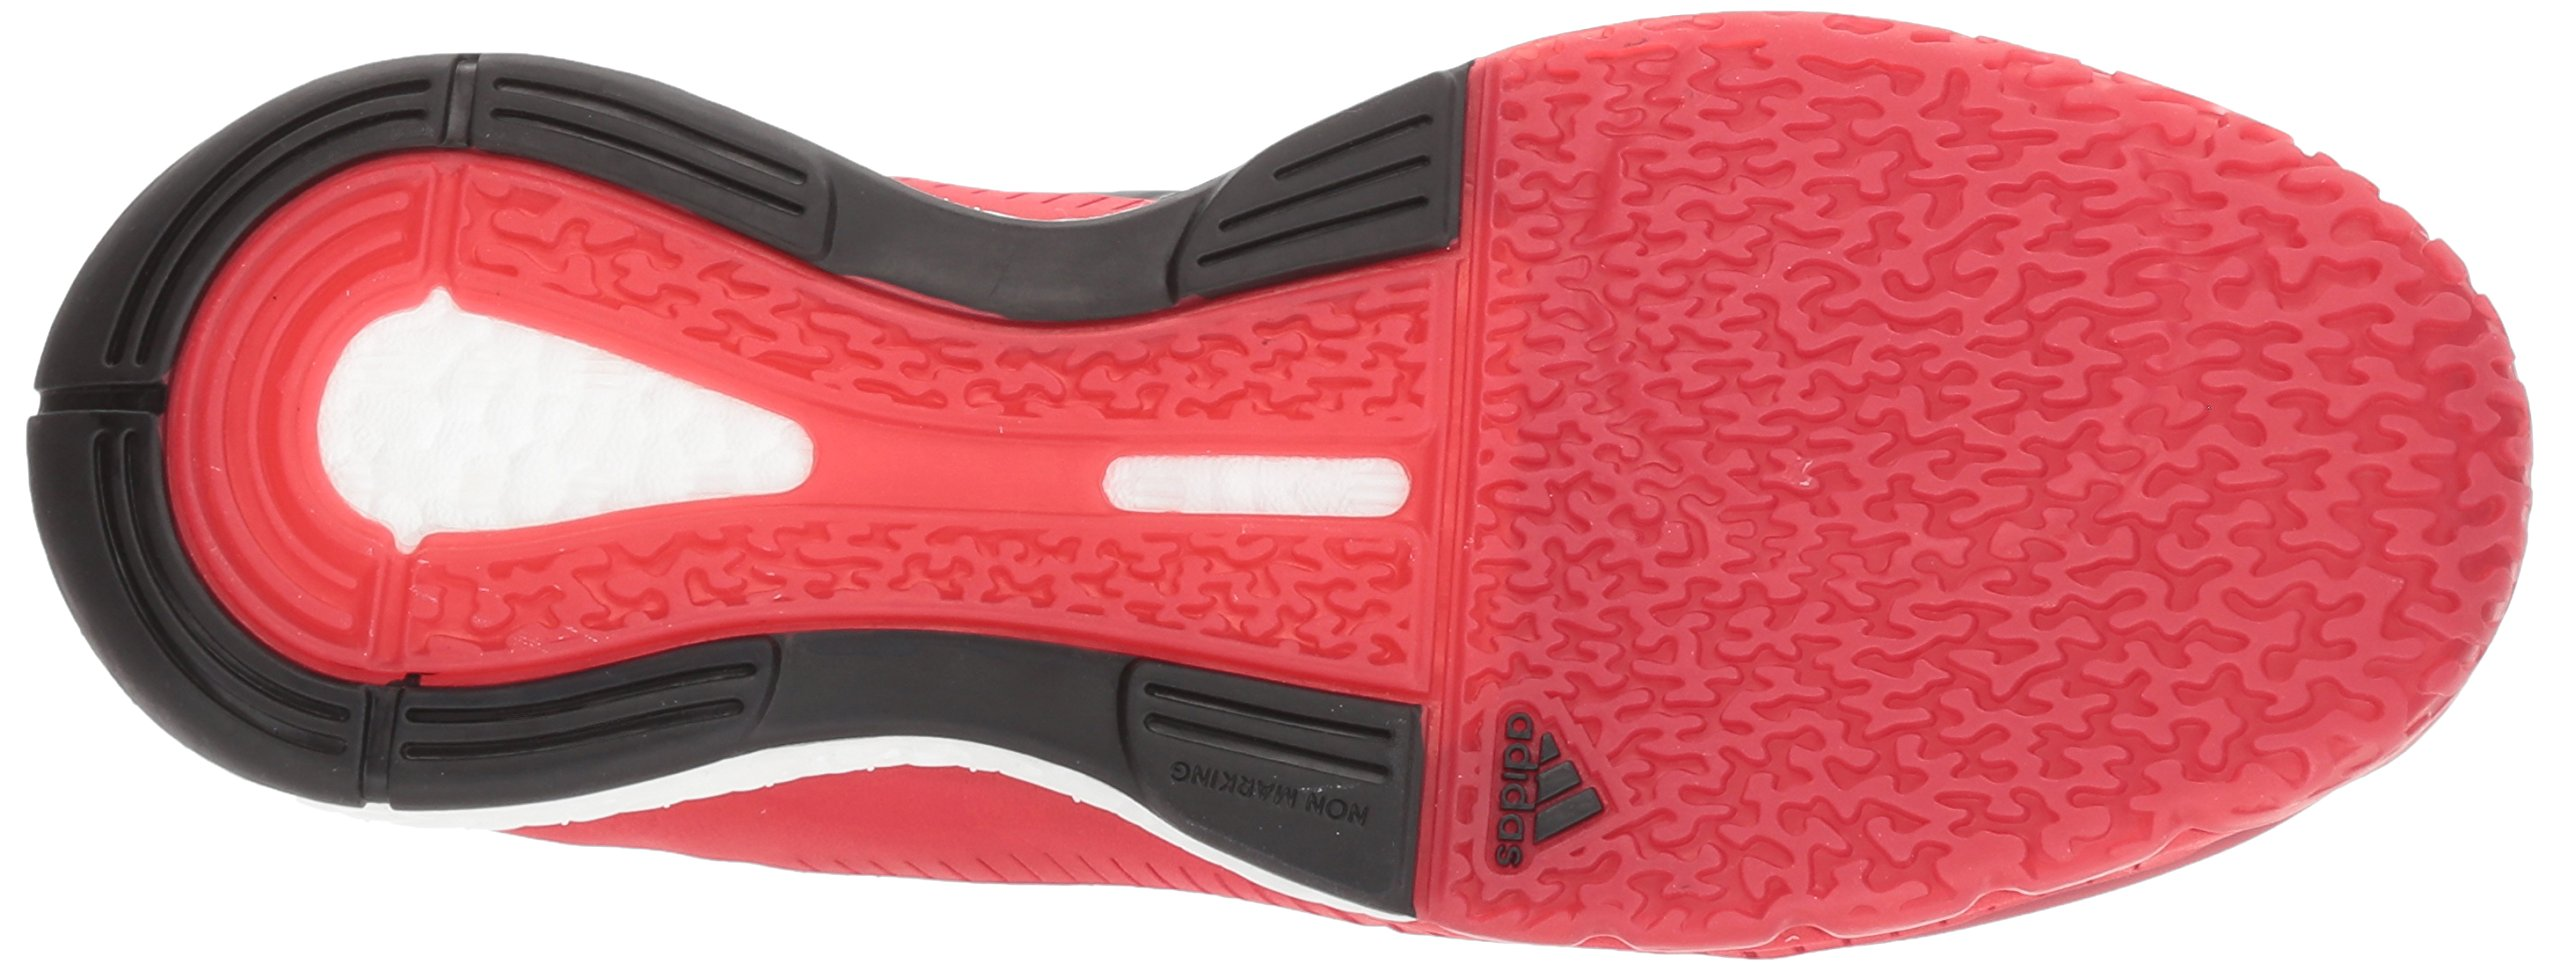 Adidas Women's Shoes Crazyflight X Volleyball Shoe Black/Metallic Silver/Power Red,7.5 by adidas Originals (Image #3)